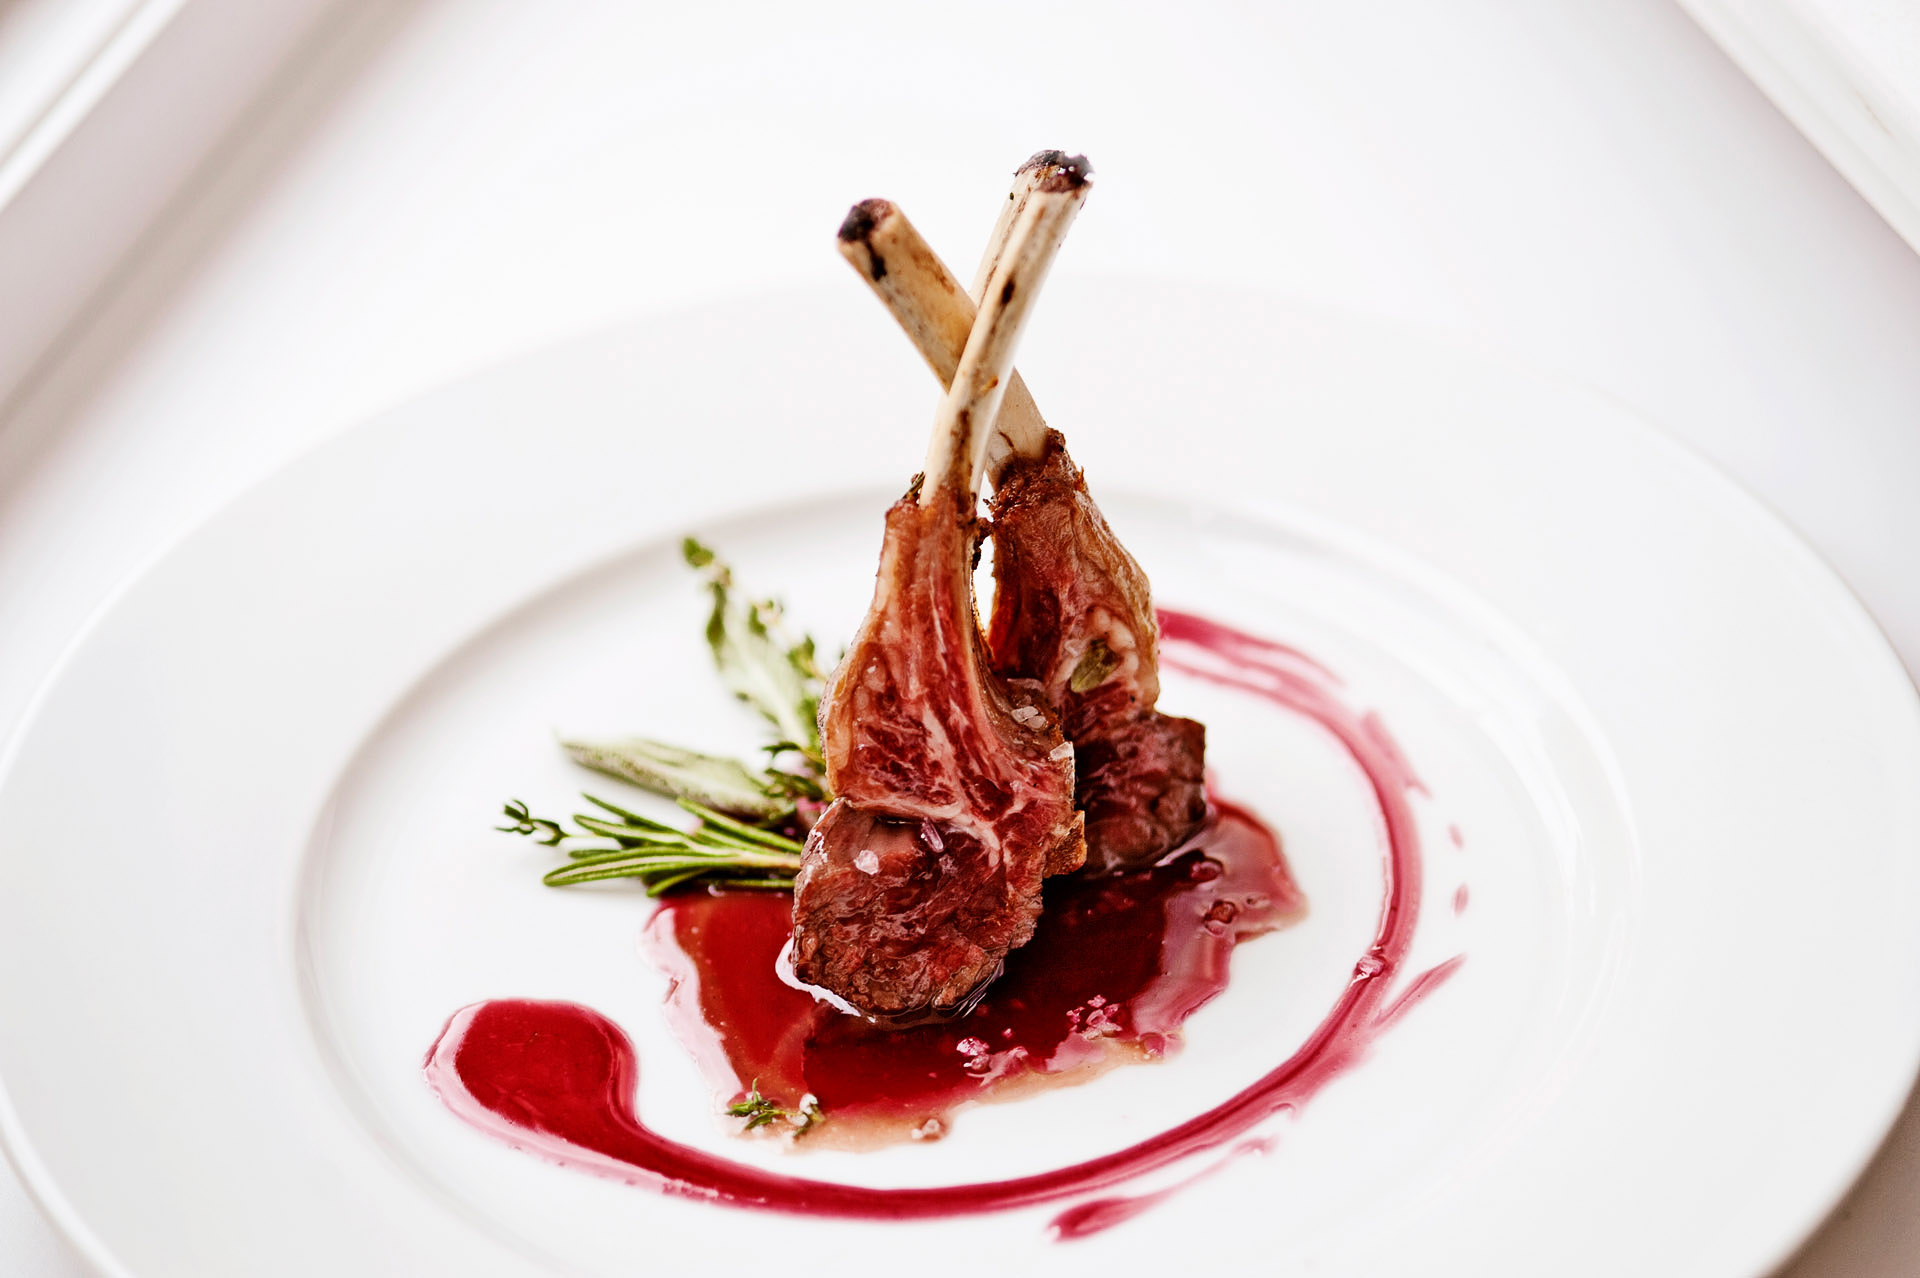 Food picture-Grilled mutton on white plate